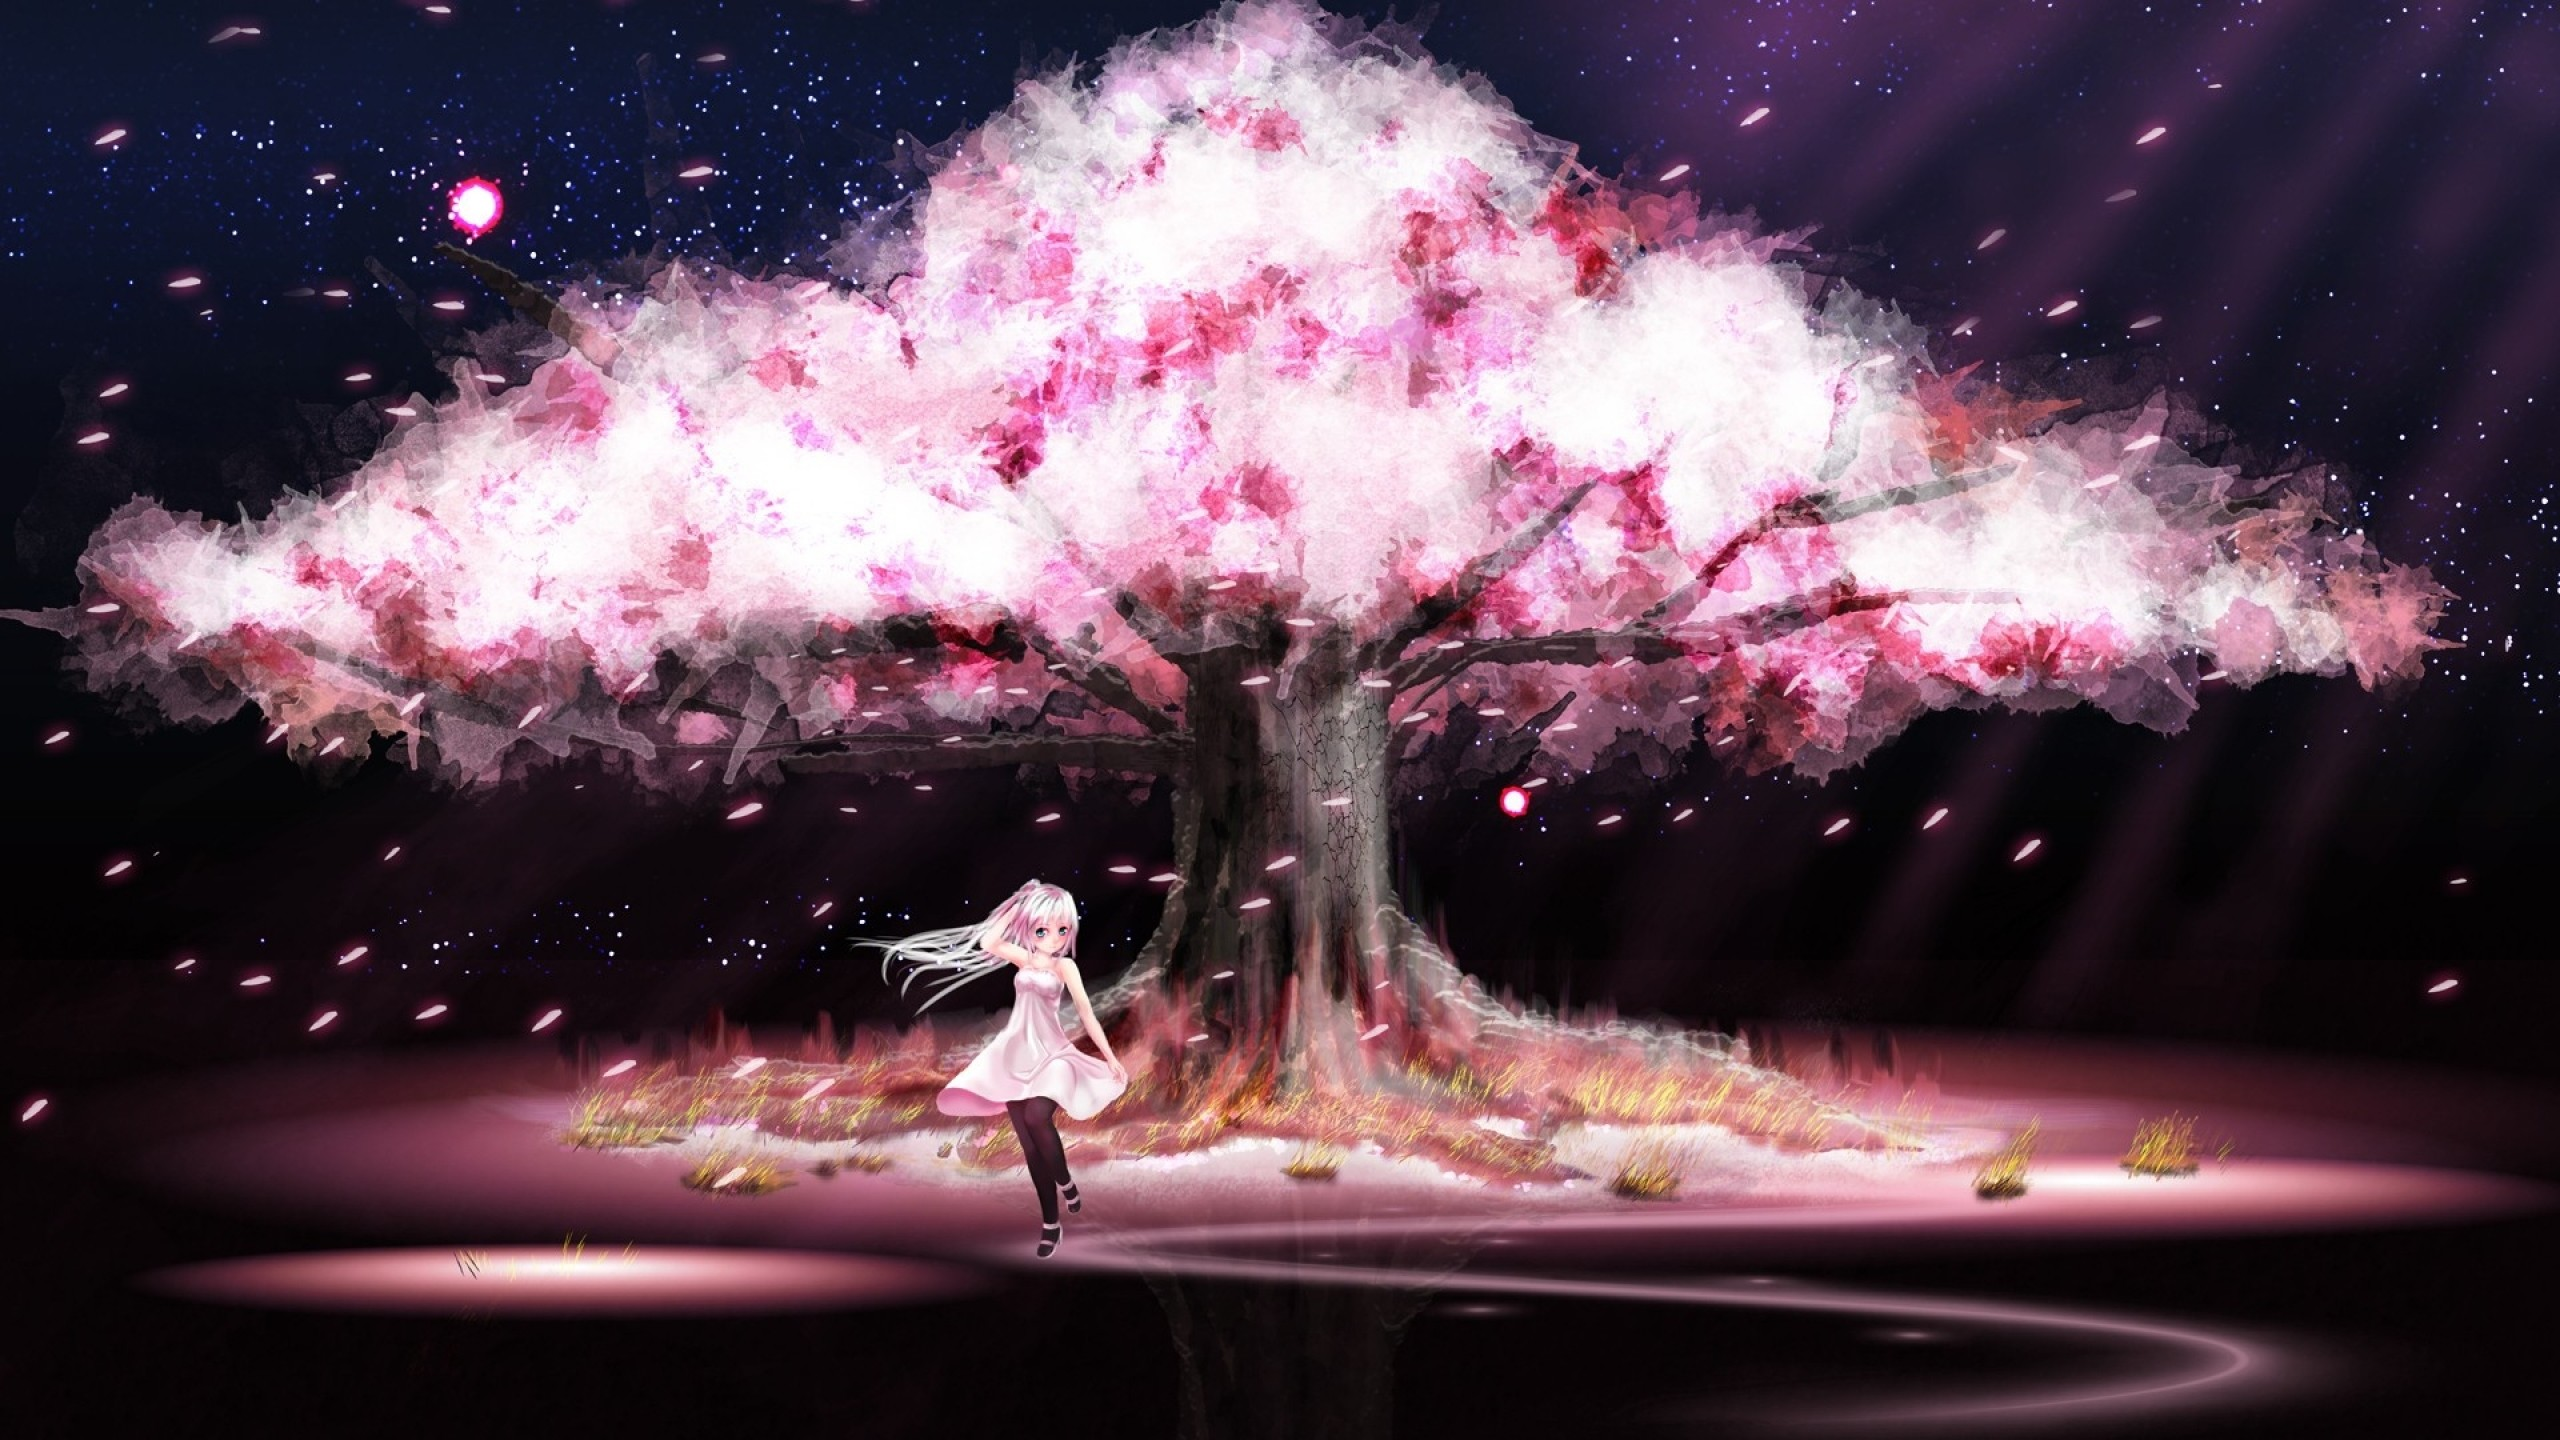 2560x1440 wallpaper.wiki-Anime-Cherry-Blossom-Wallpaper-PIC-WPC004901